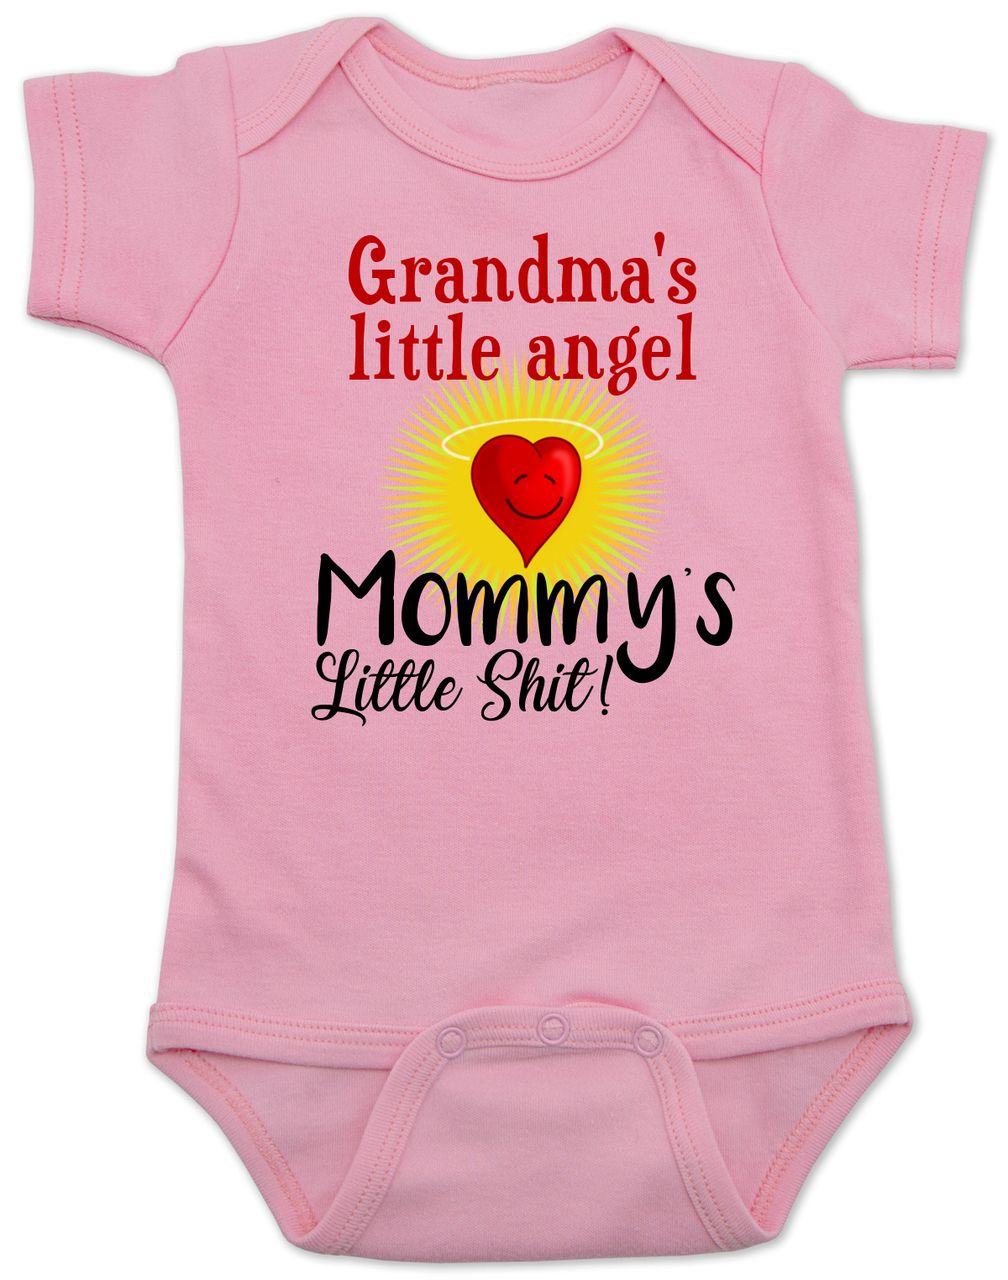 710d545d2437 Mommy s Little Shit Baby Bodysuit